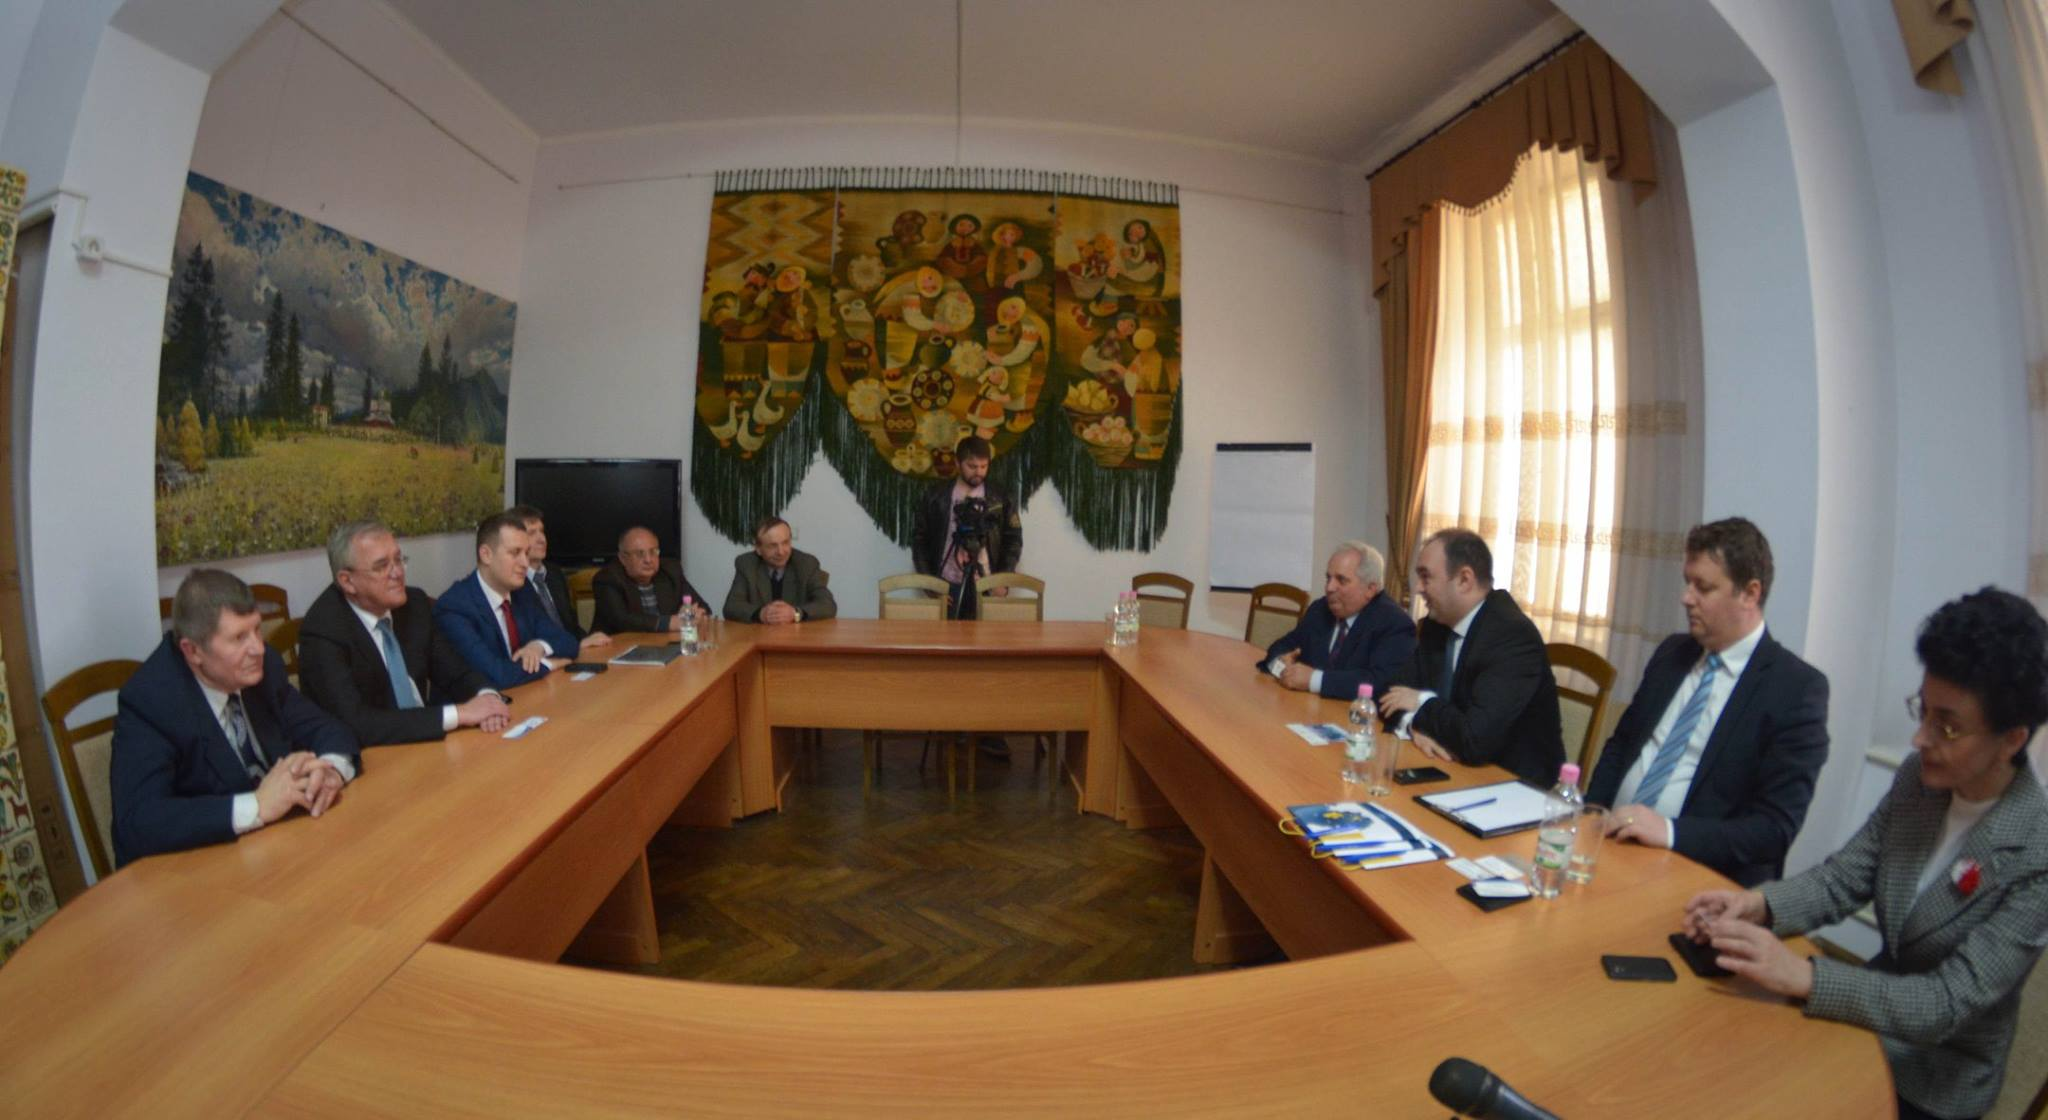 <a class=&quot;amazingslider-posttitle-link&quot; href=&quot;http://www.euroregiune.org/en/visit-ivano-frankivsk-ukraine-25-26-march-2015/&quot; target=&quot;_self&quot;>Visit at Ivano-Frankivsk, Ukraine 25-26 March 2015</a>